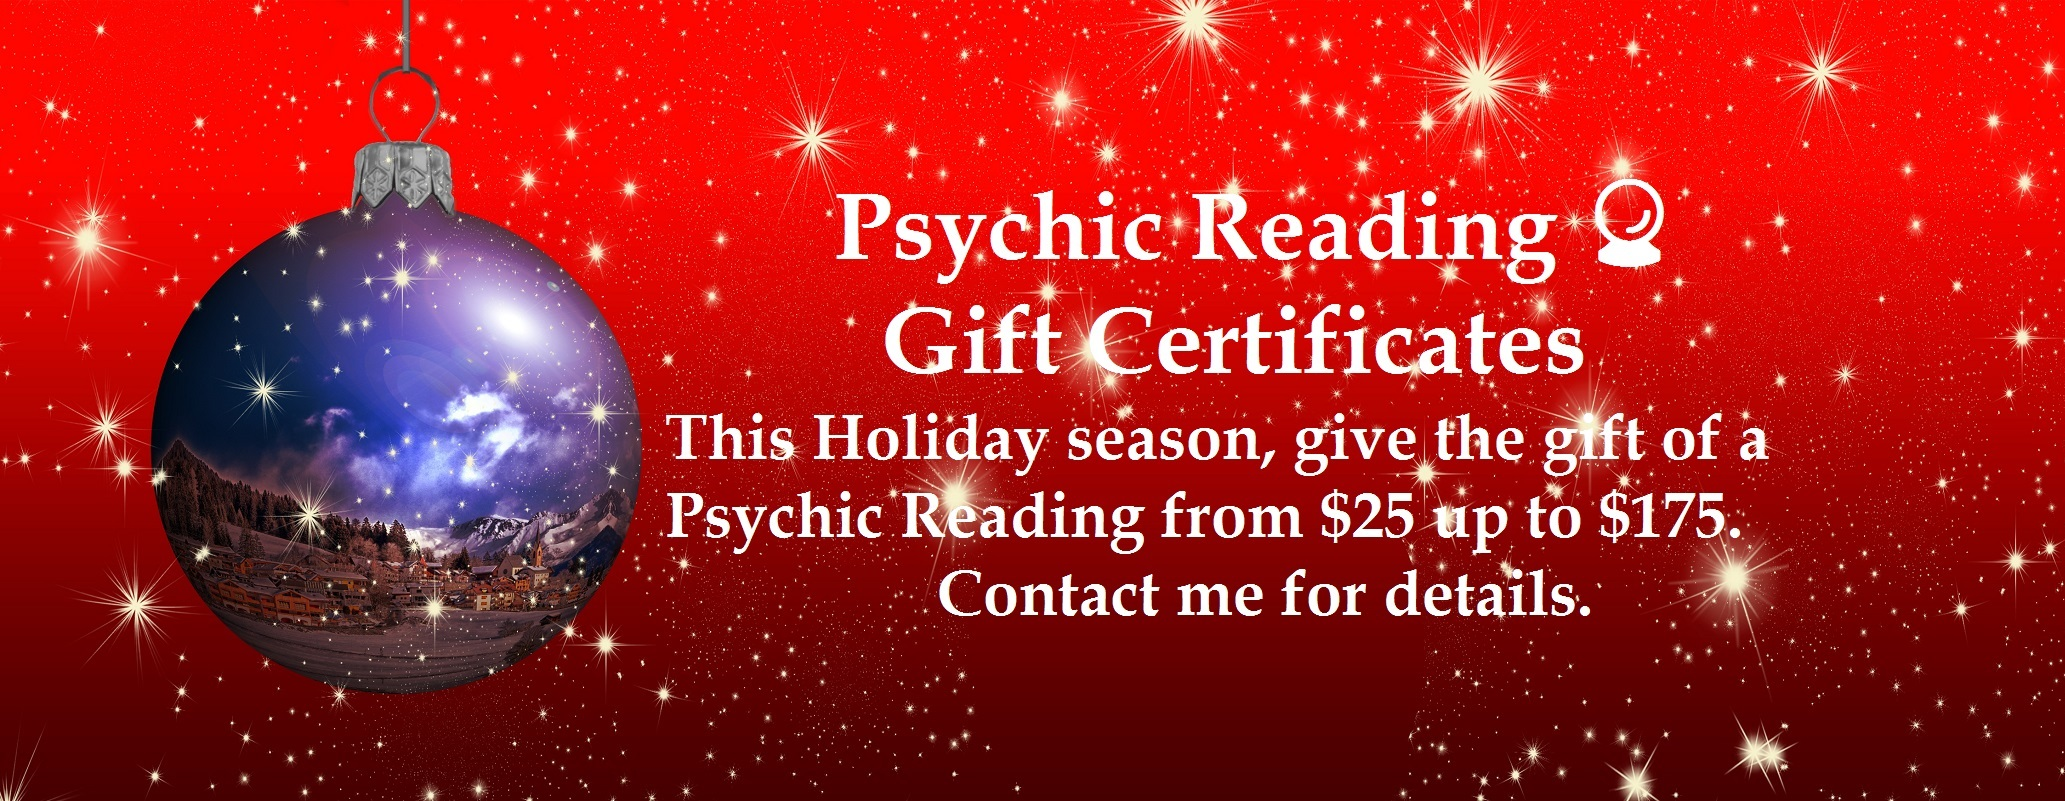 Gift Certificates, Psychic Readings, Email Reading, Holiday Season 2017